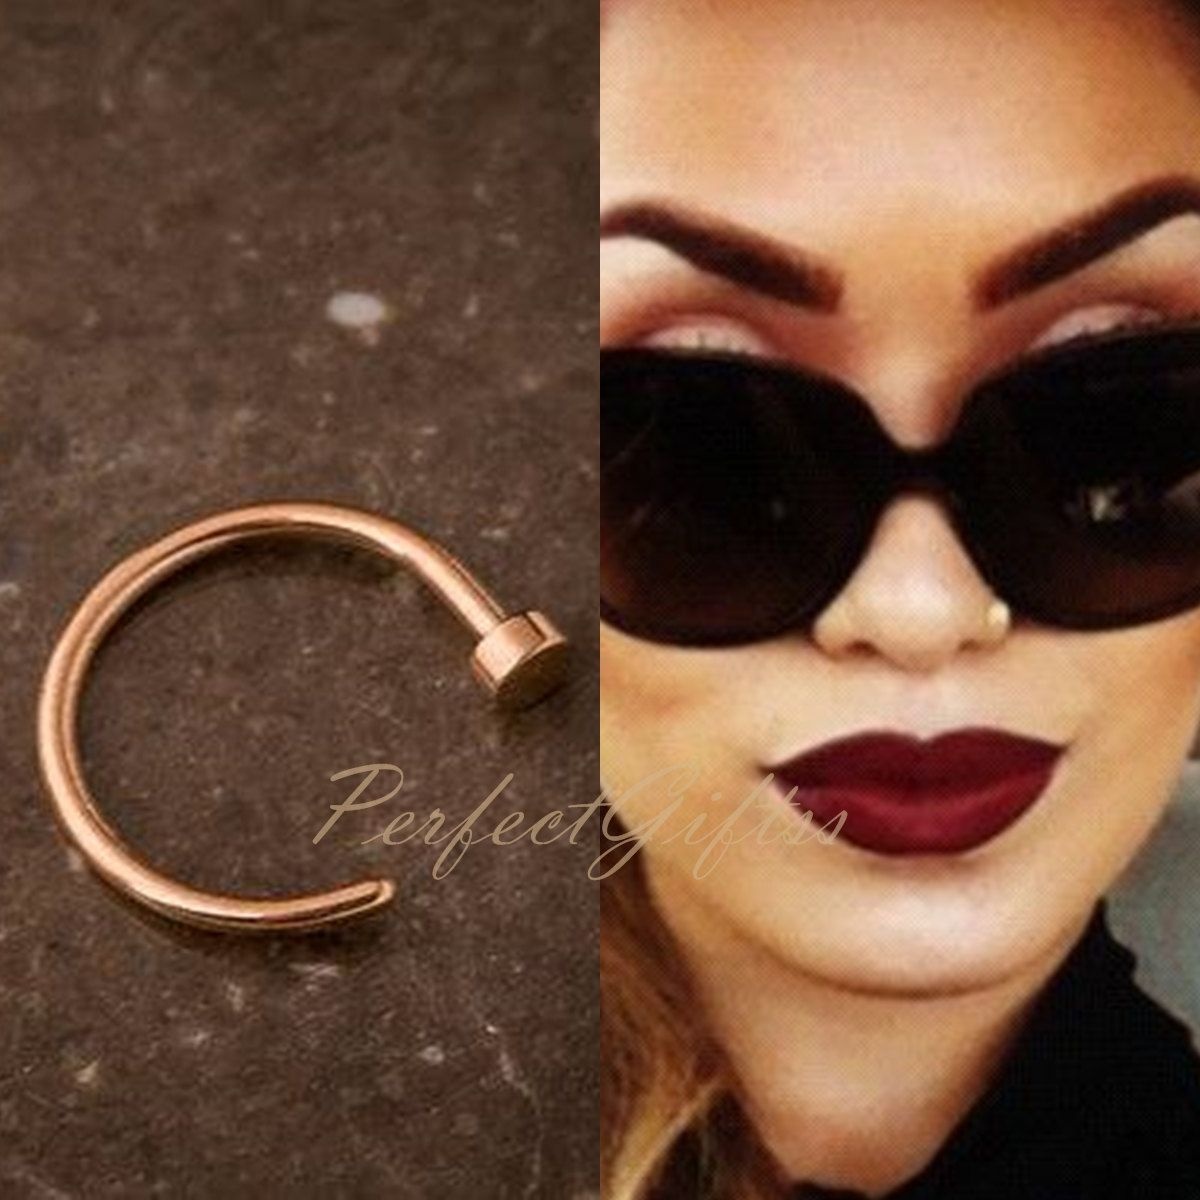 Small Rose Gold Helix Ring, Nose Hoop Nose Ring, Cartilage Earrings,  Nosehoop